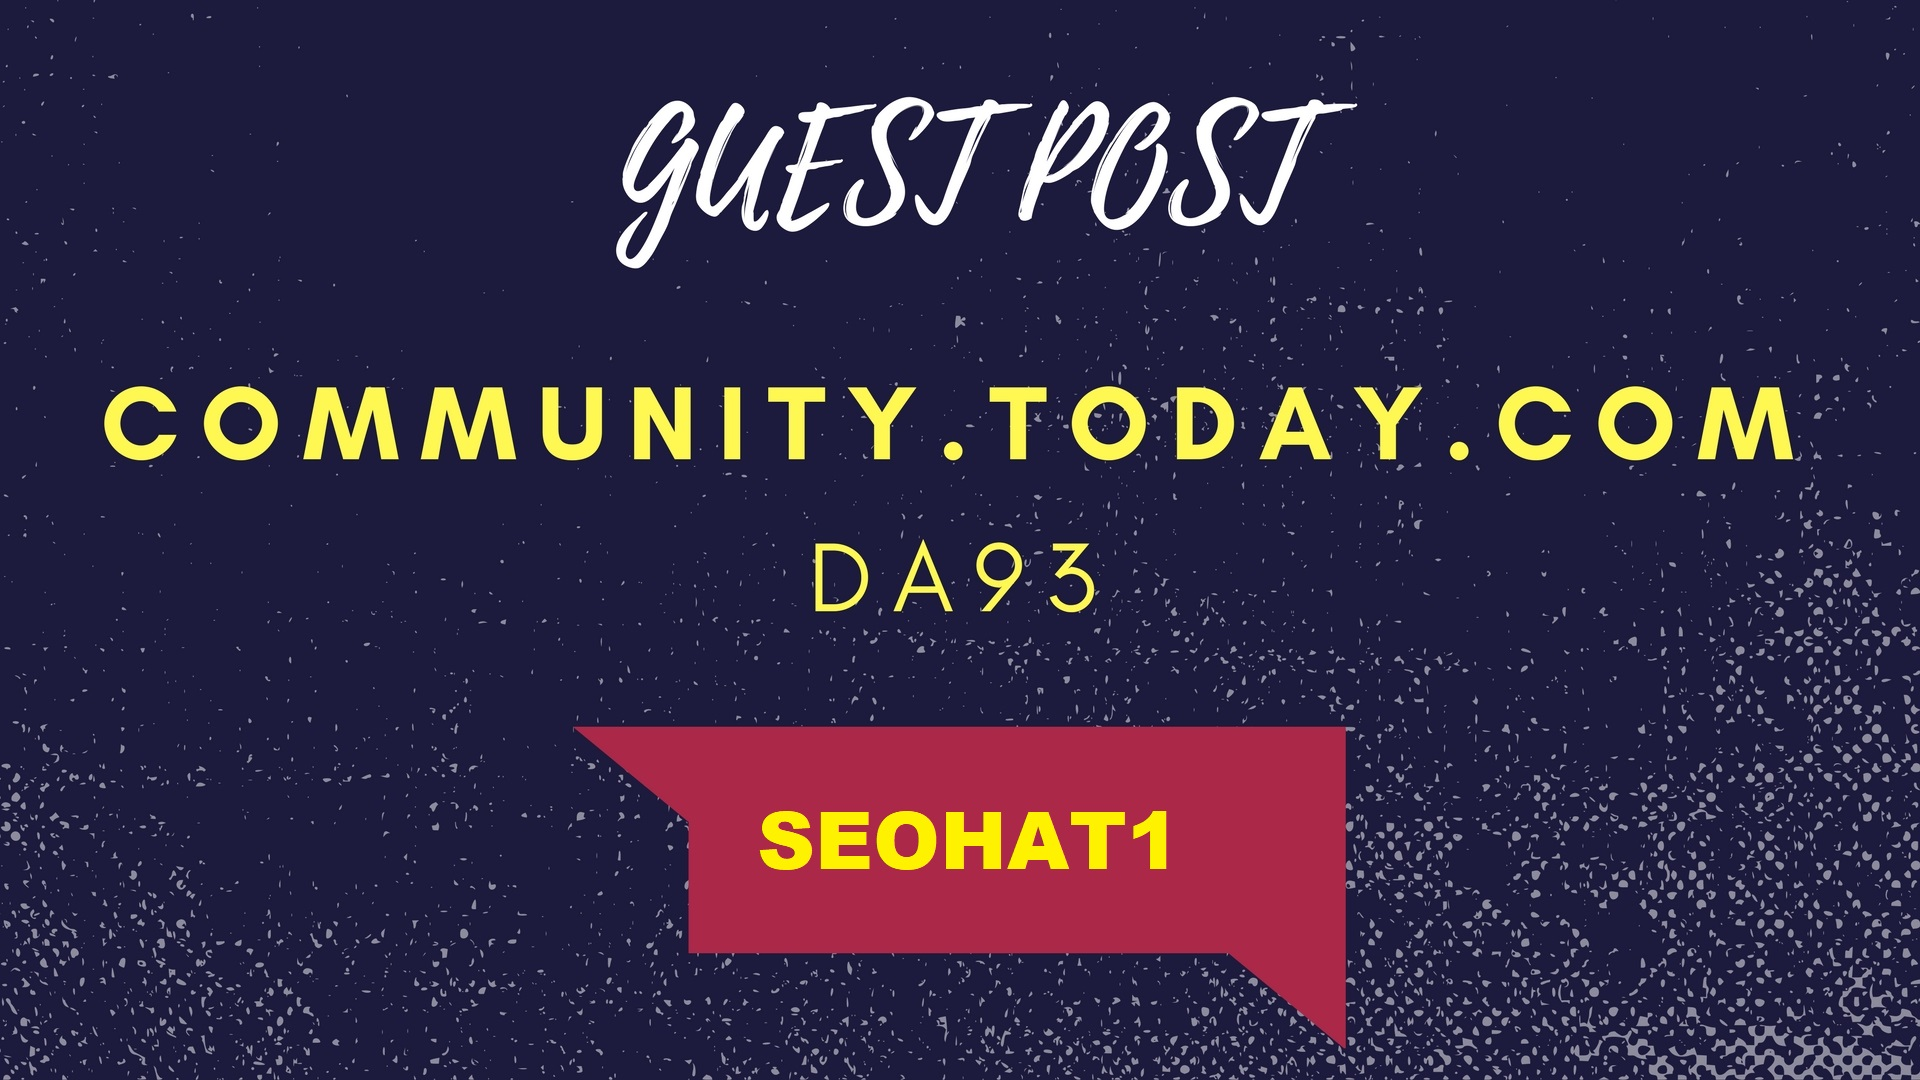 Guest post on community. today. com DA93 authority news site